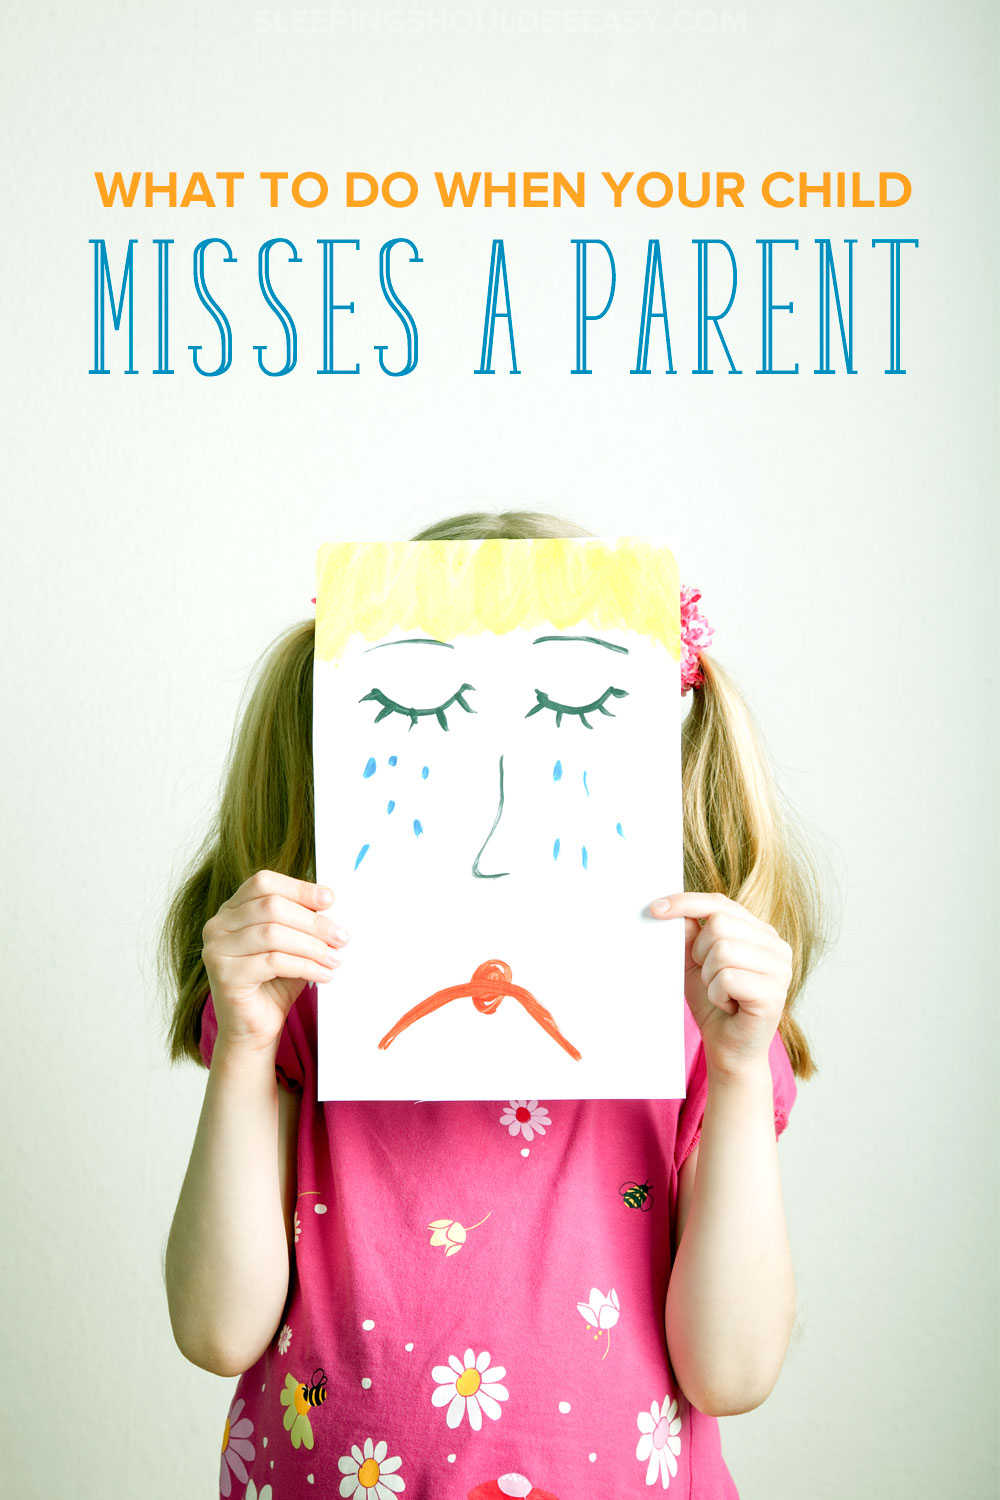 Does your child miss you when you're out of town or working long hours? Here are surefire ways to comfort when your child misses a parent who is away.